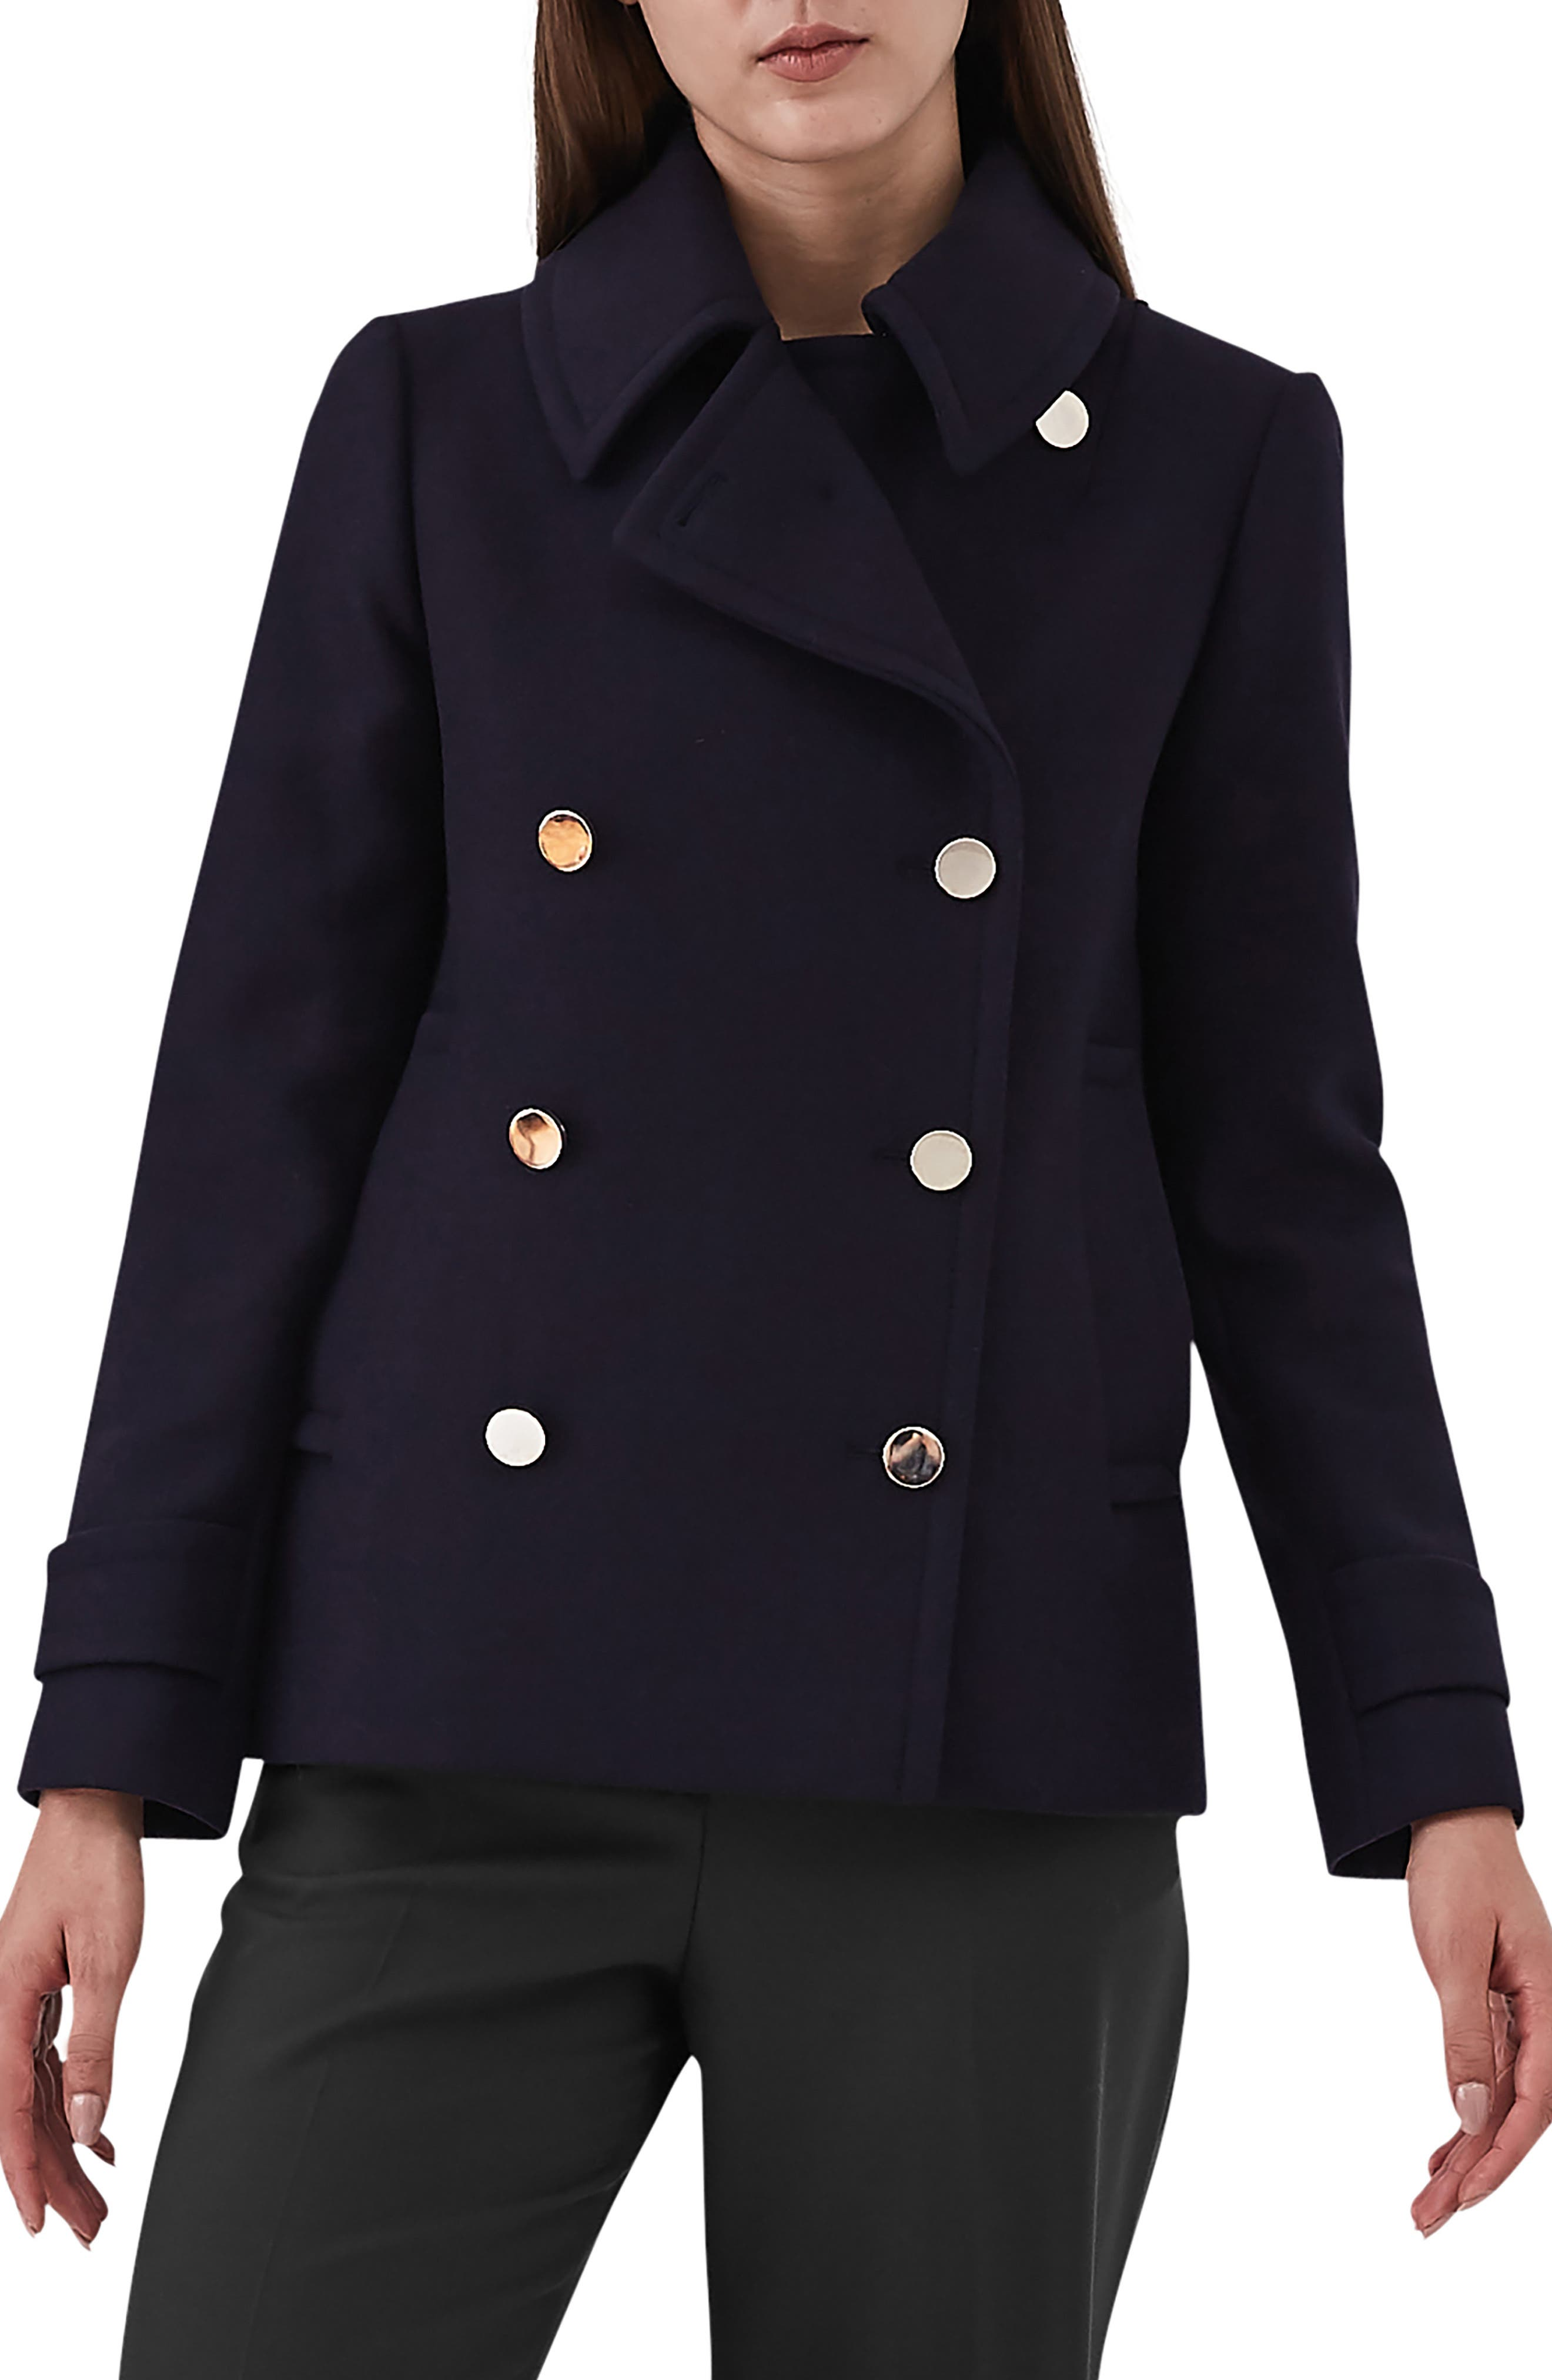 Becall Double Breasted Wool Blend Peacoat,                             Main thumbnail 1, color,                             NAVY